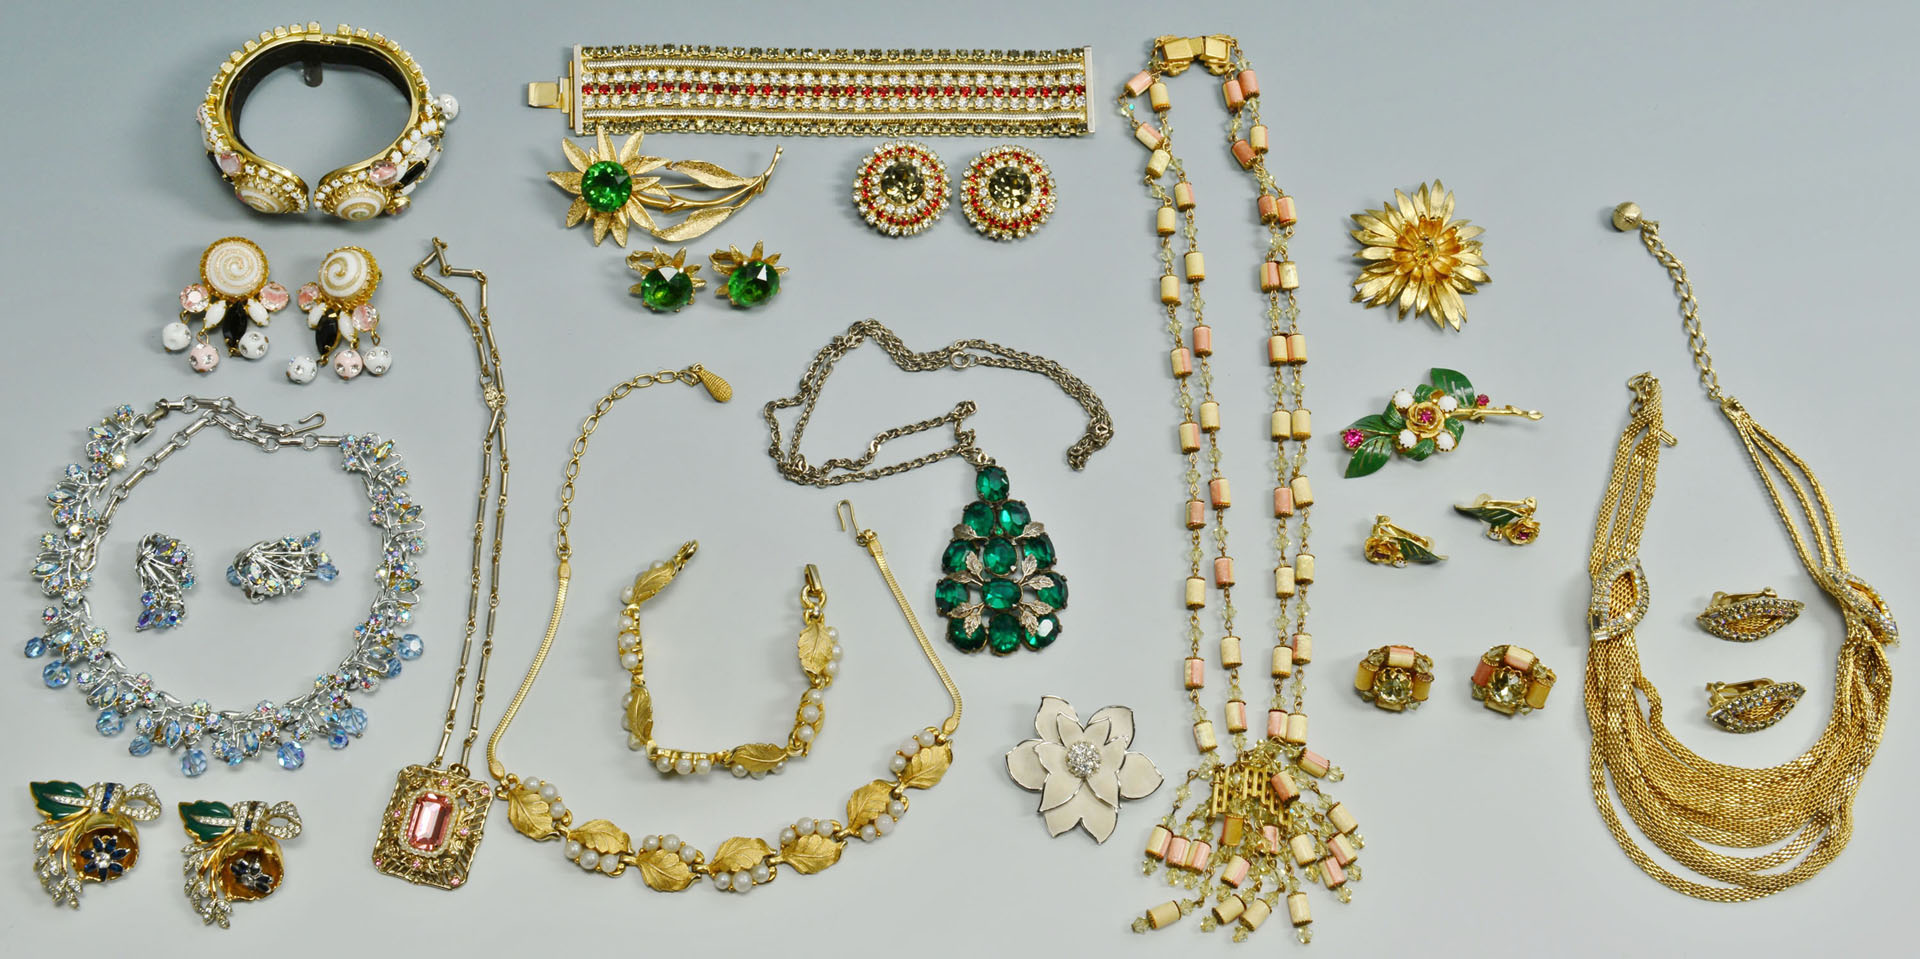 Group Costume Jewelry: Hobe, Coro, Pennino